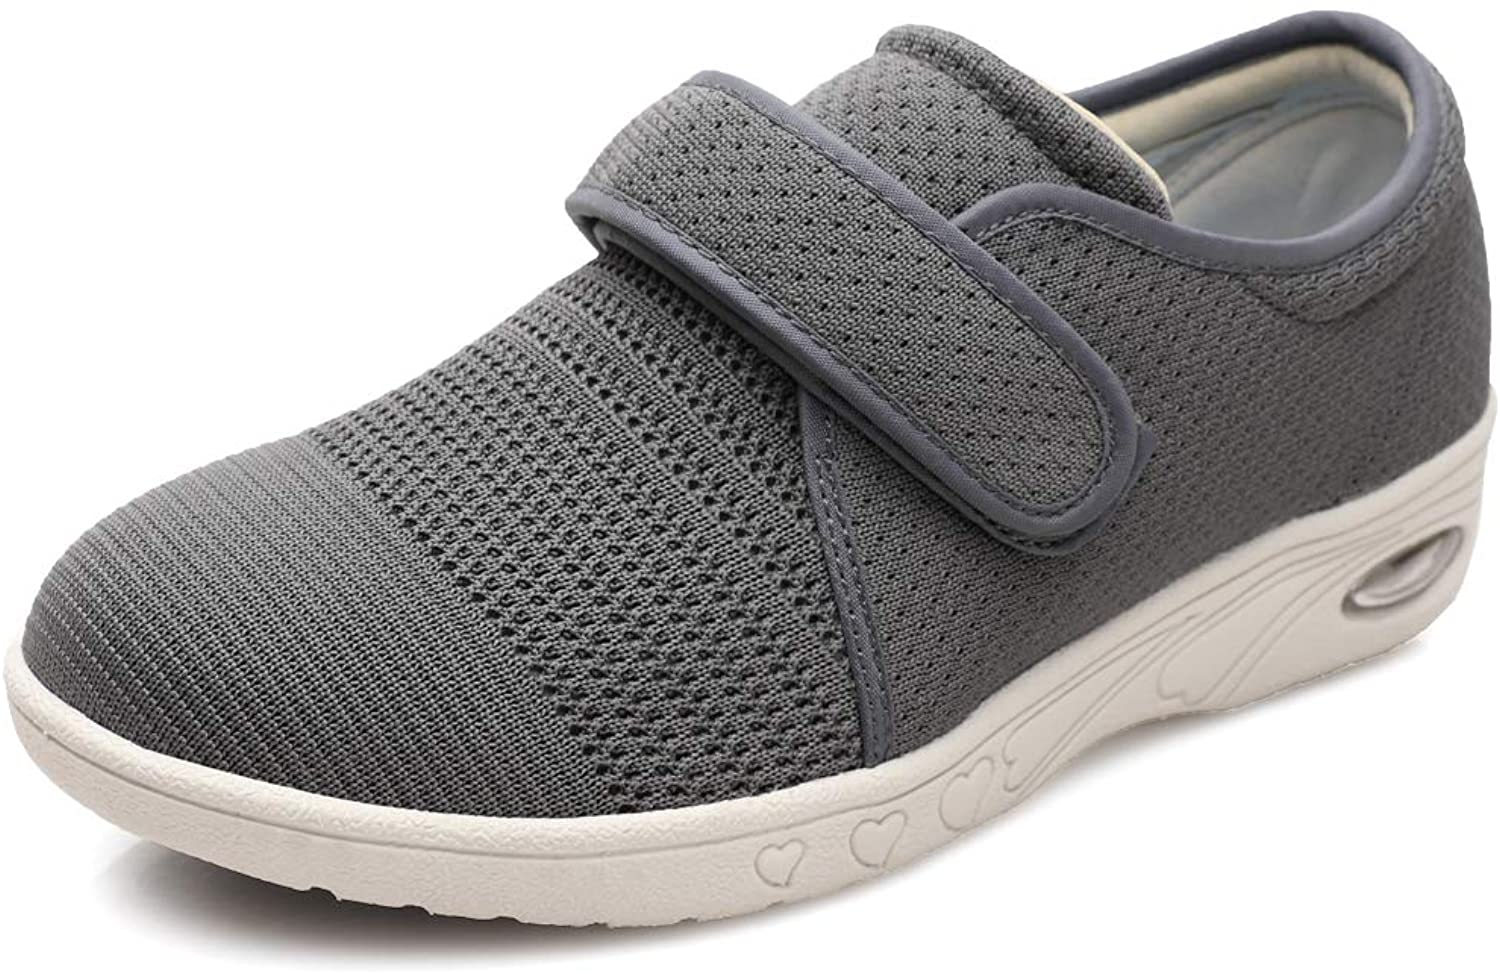 Youyun Women's SEAL limited product Diabetic Shoes for Women Adjustable Ranking TOP17 Casual Velcro